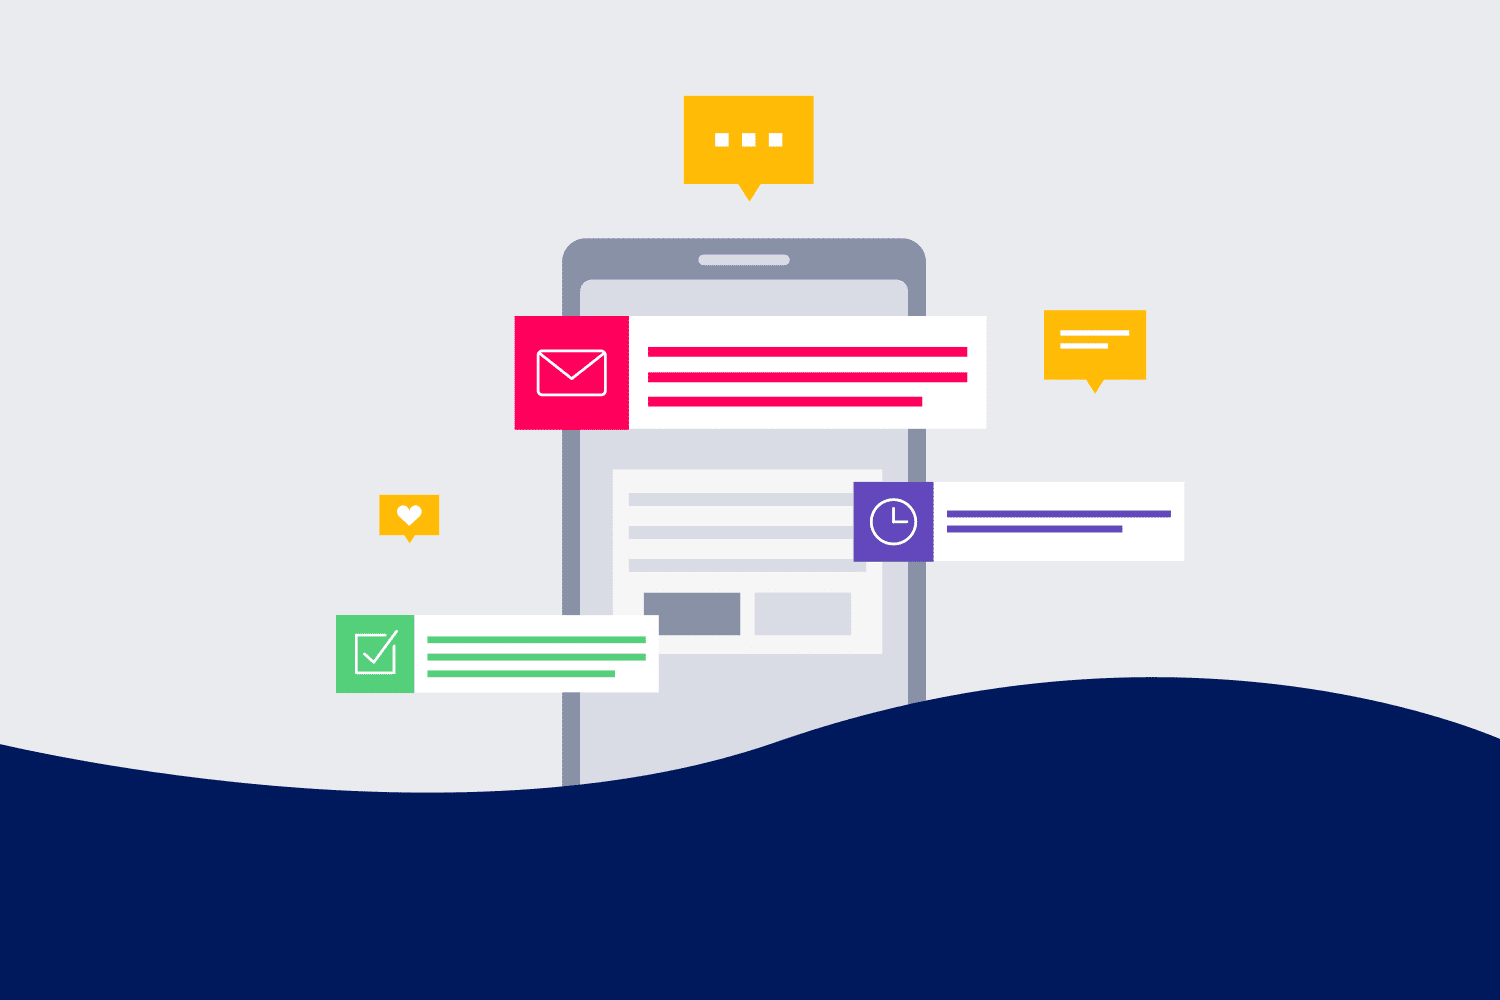 Mobile push messaging illustration